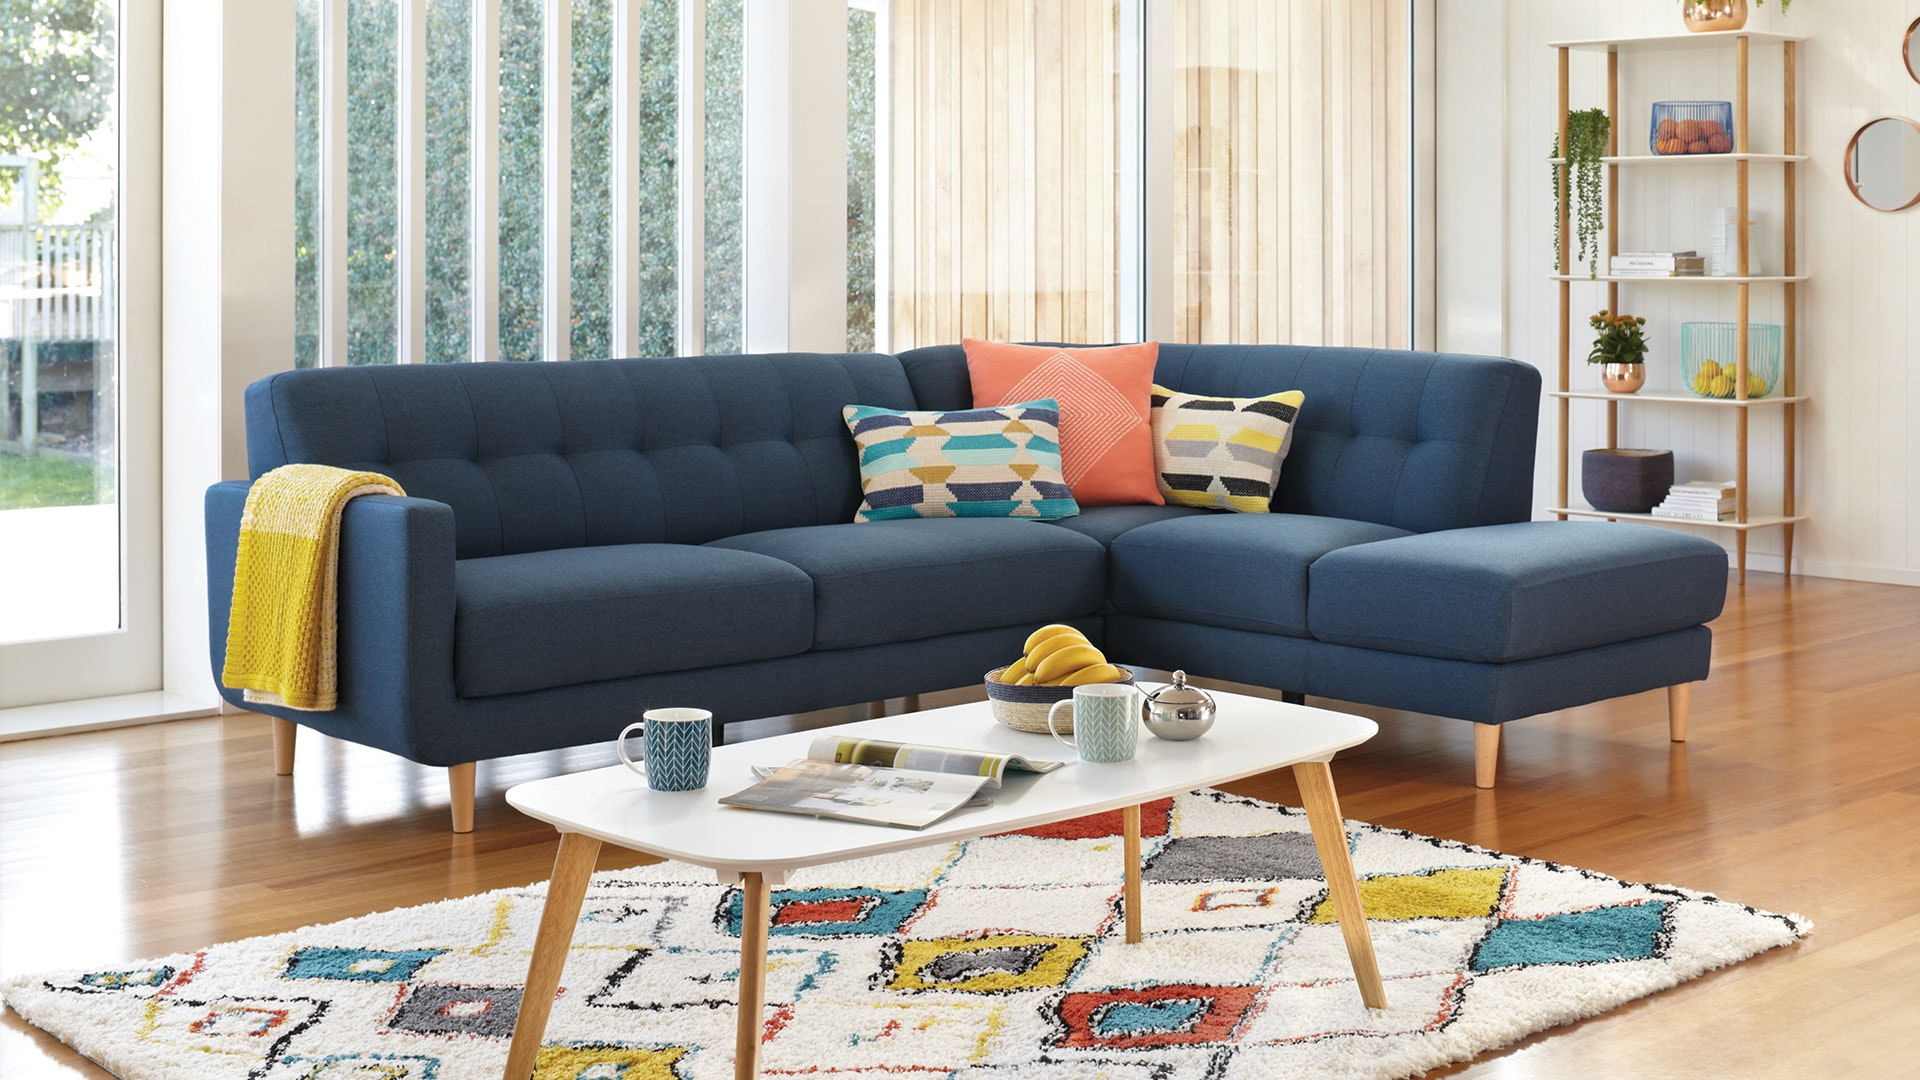 Hogan 3 Seater Fabric Sofa With Chaise ...